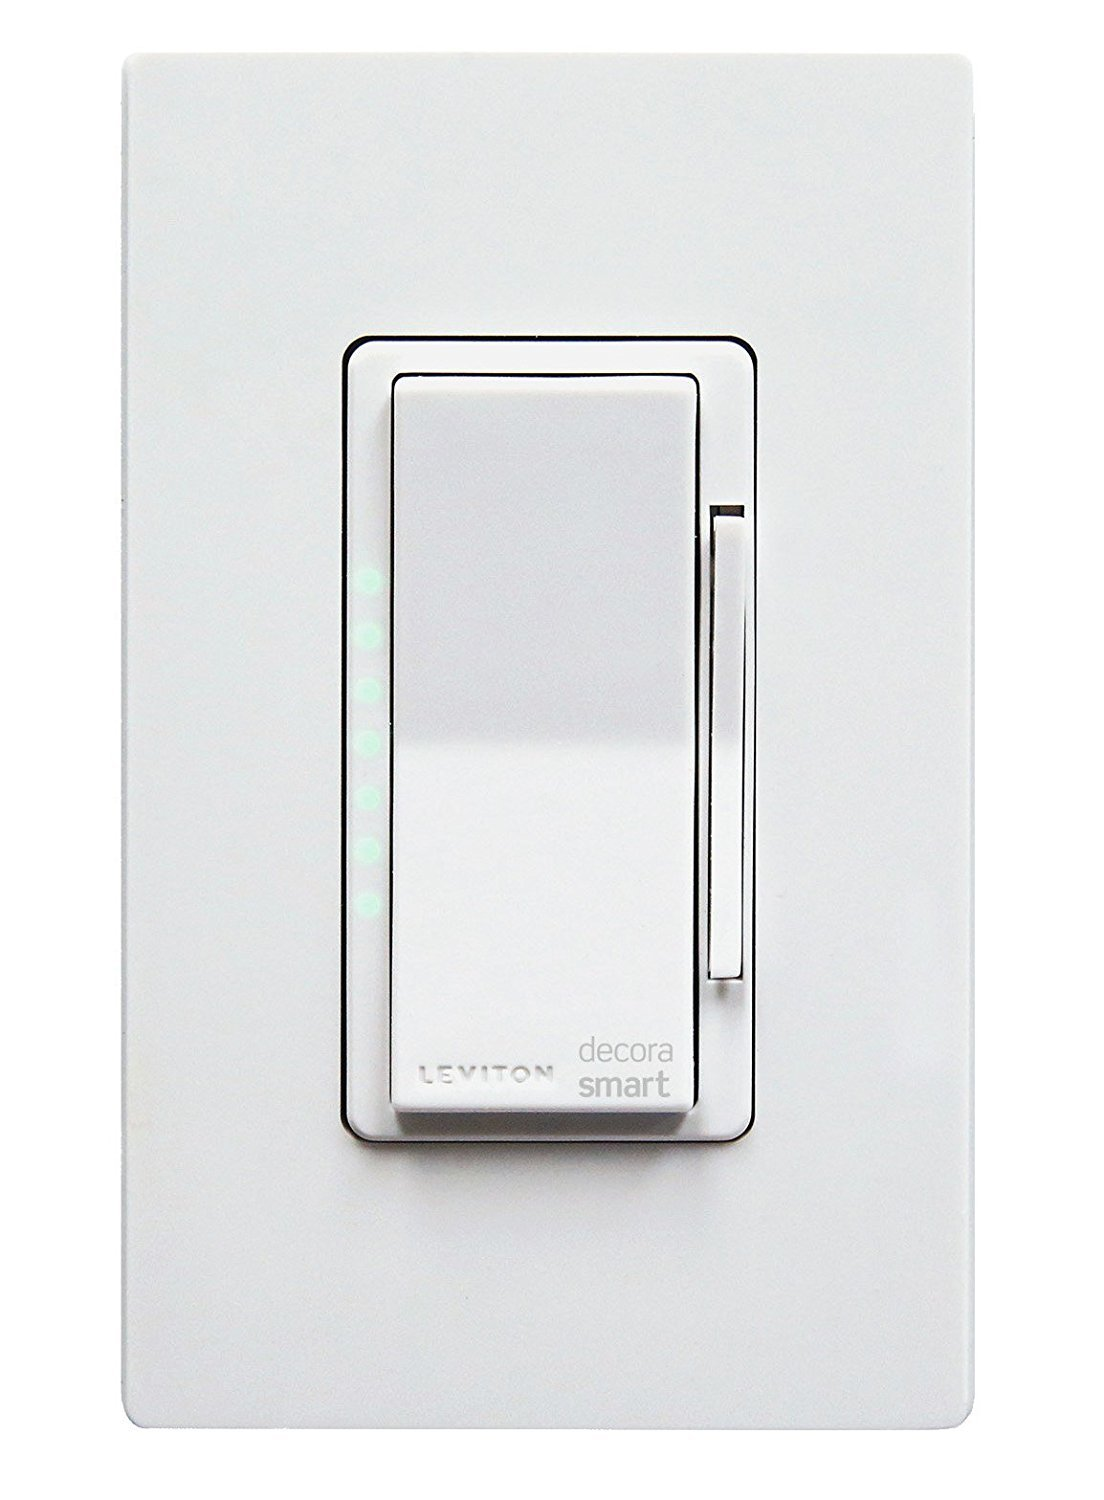 Leviton Dh6hd 1bz 600w Decora Smart Dimmer Works With Apple Homekit Four Way Switch Motion Sensor